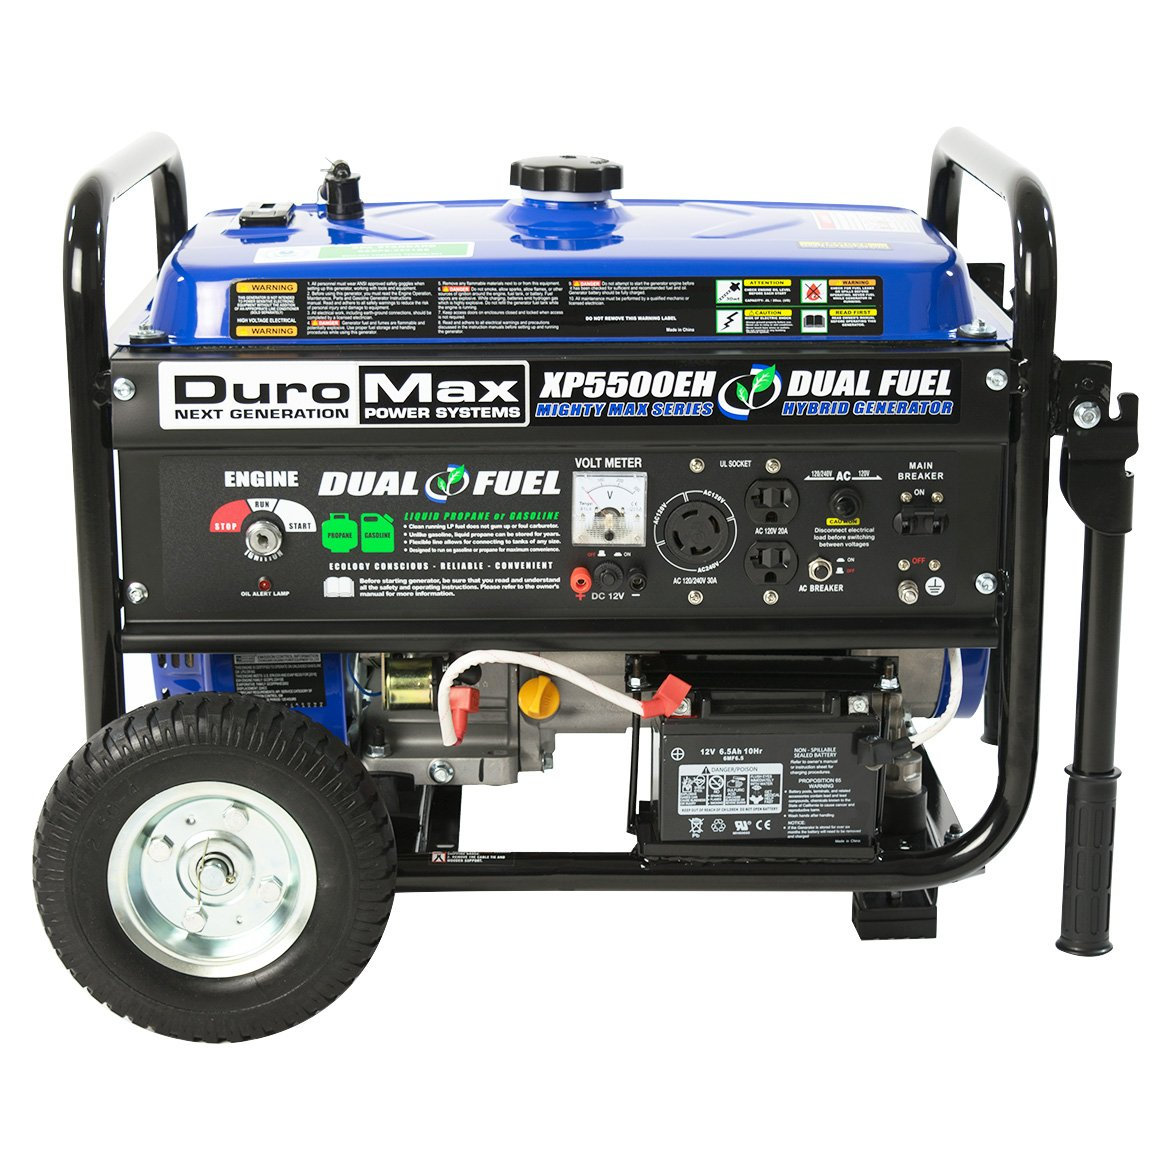 DuroMax XP5500EH Gas/Propane Powered Dual Fuel Portable Generator- – Refurbished